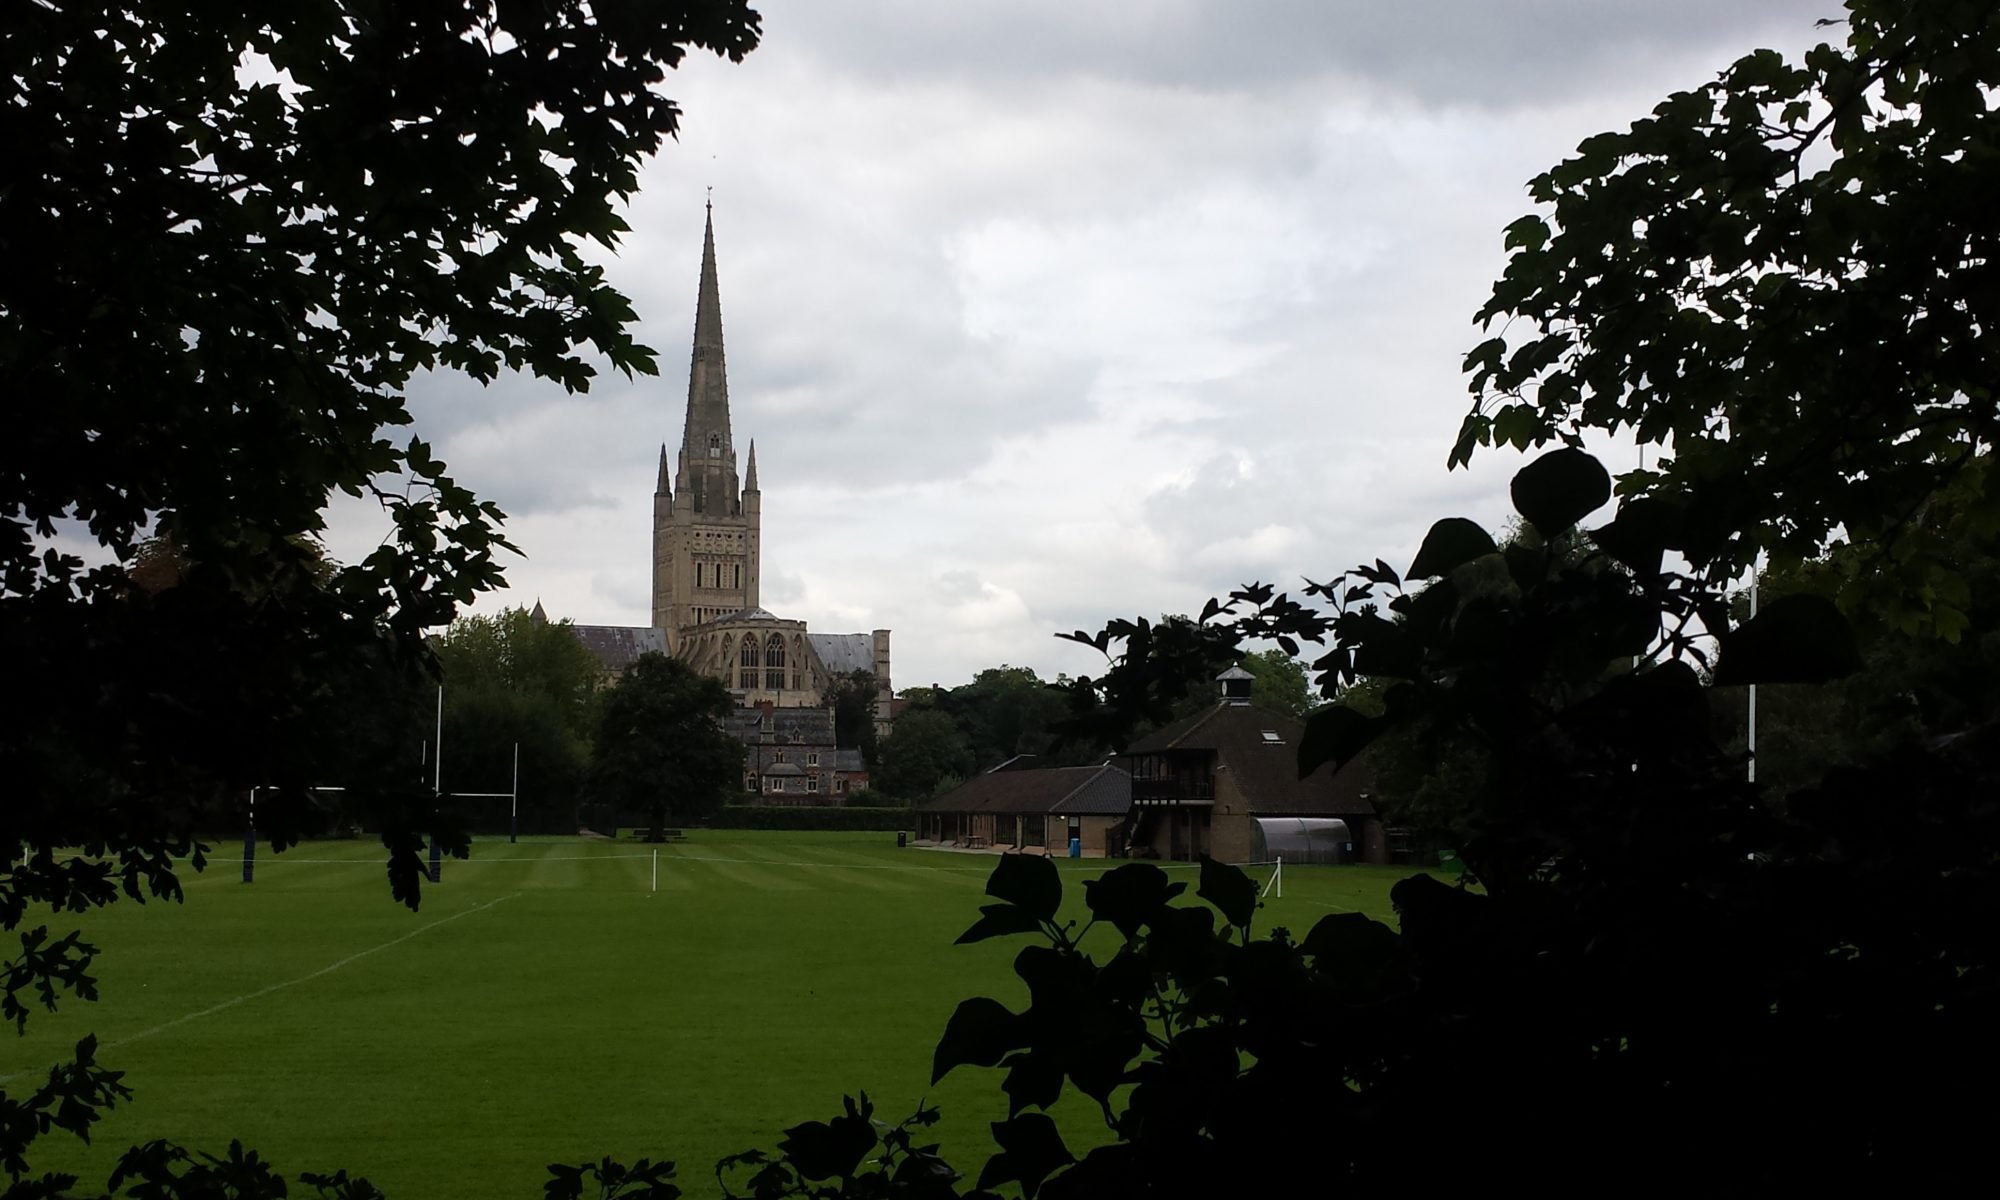 Photograph of Norwich Cathedral, taken by Marie Cooper, overlooking the Norwich School fields